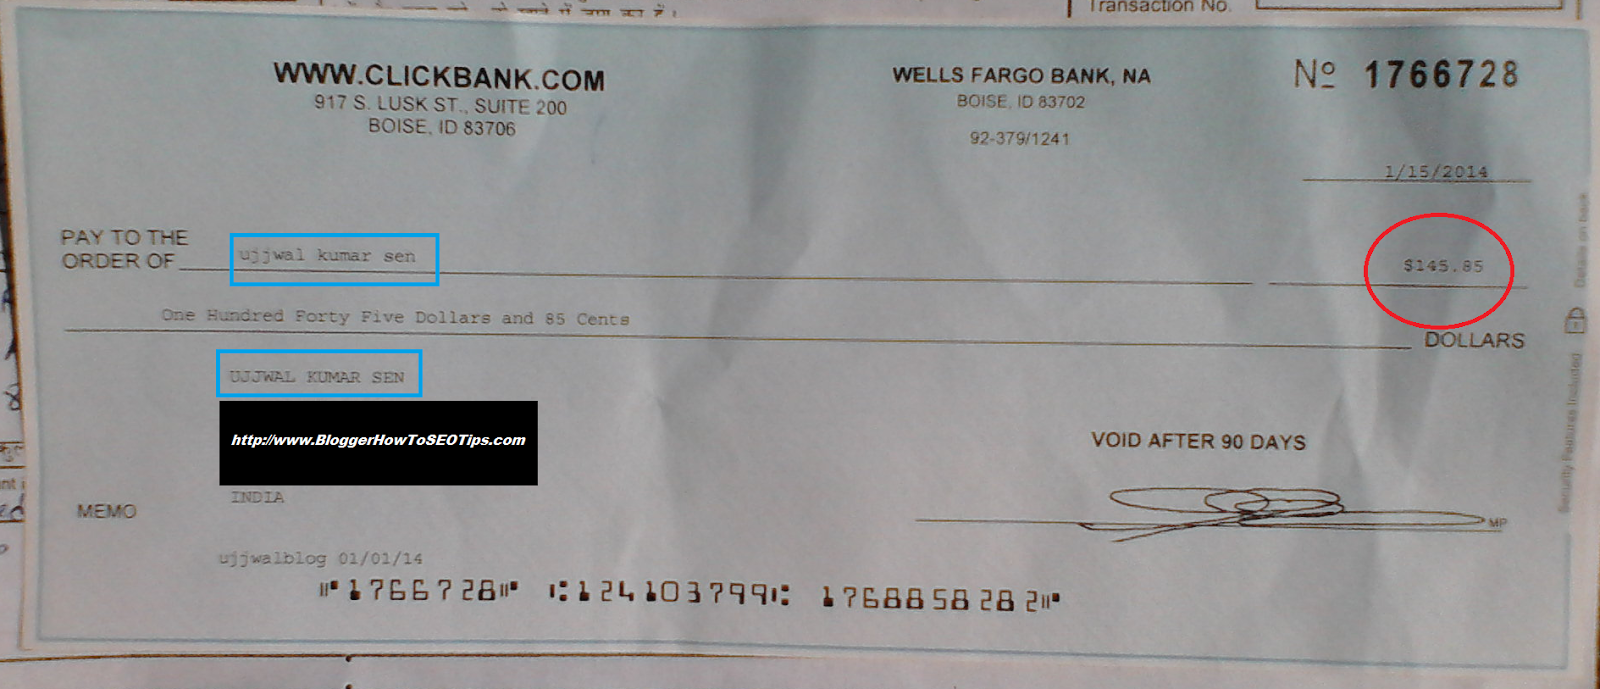 First ClickBank Cheque India